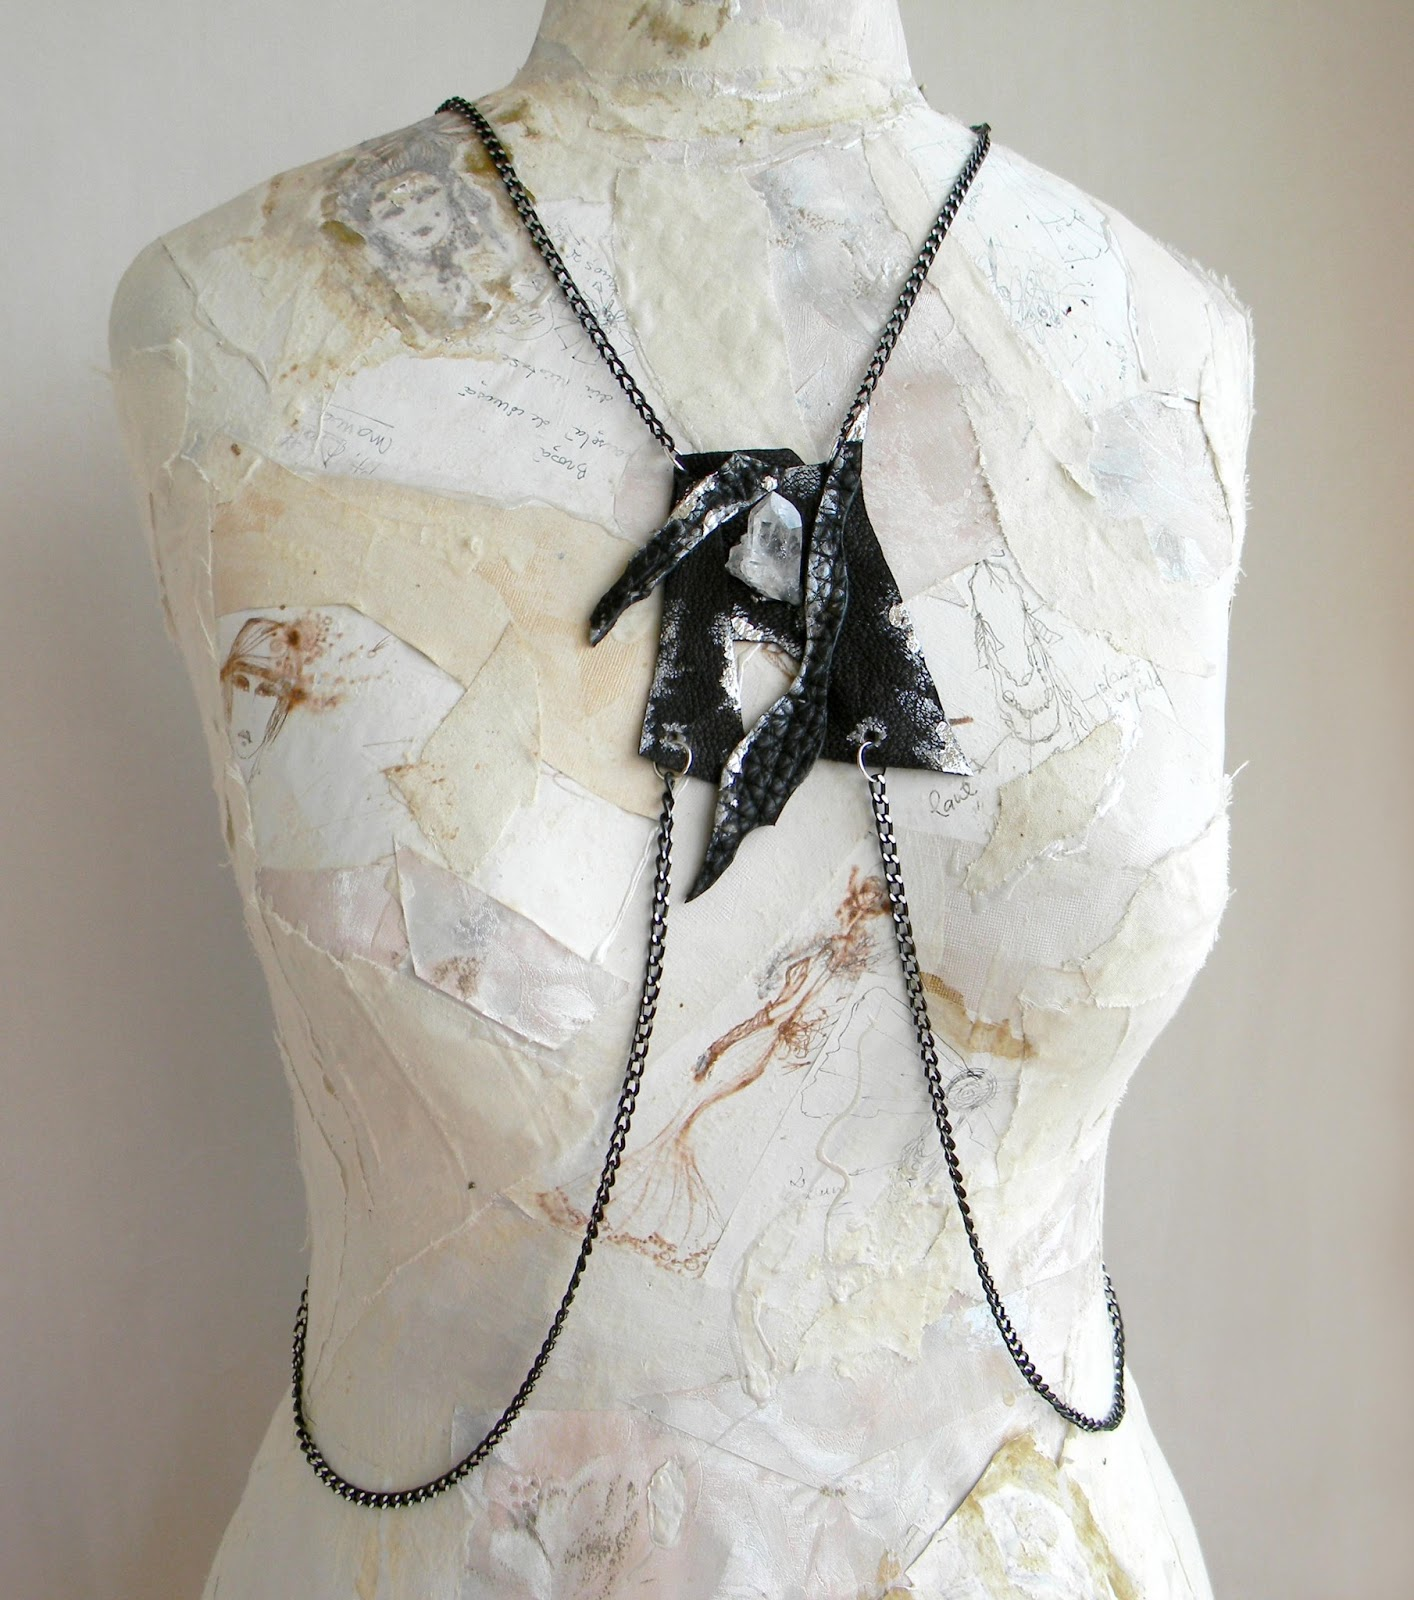 Handcrafted Body Chain Jewelry Steampunk Gothic with Quartz Crystal Rock